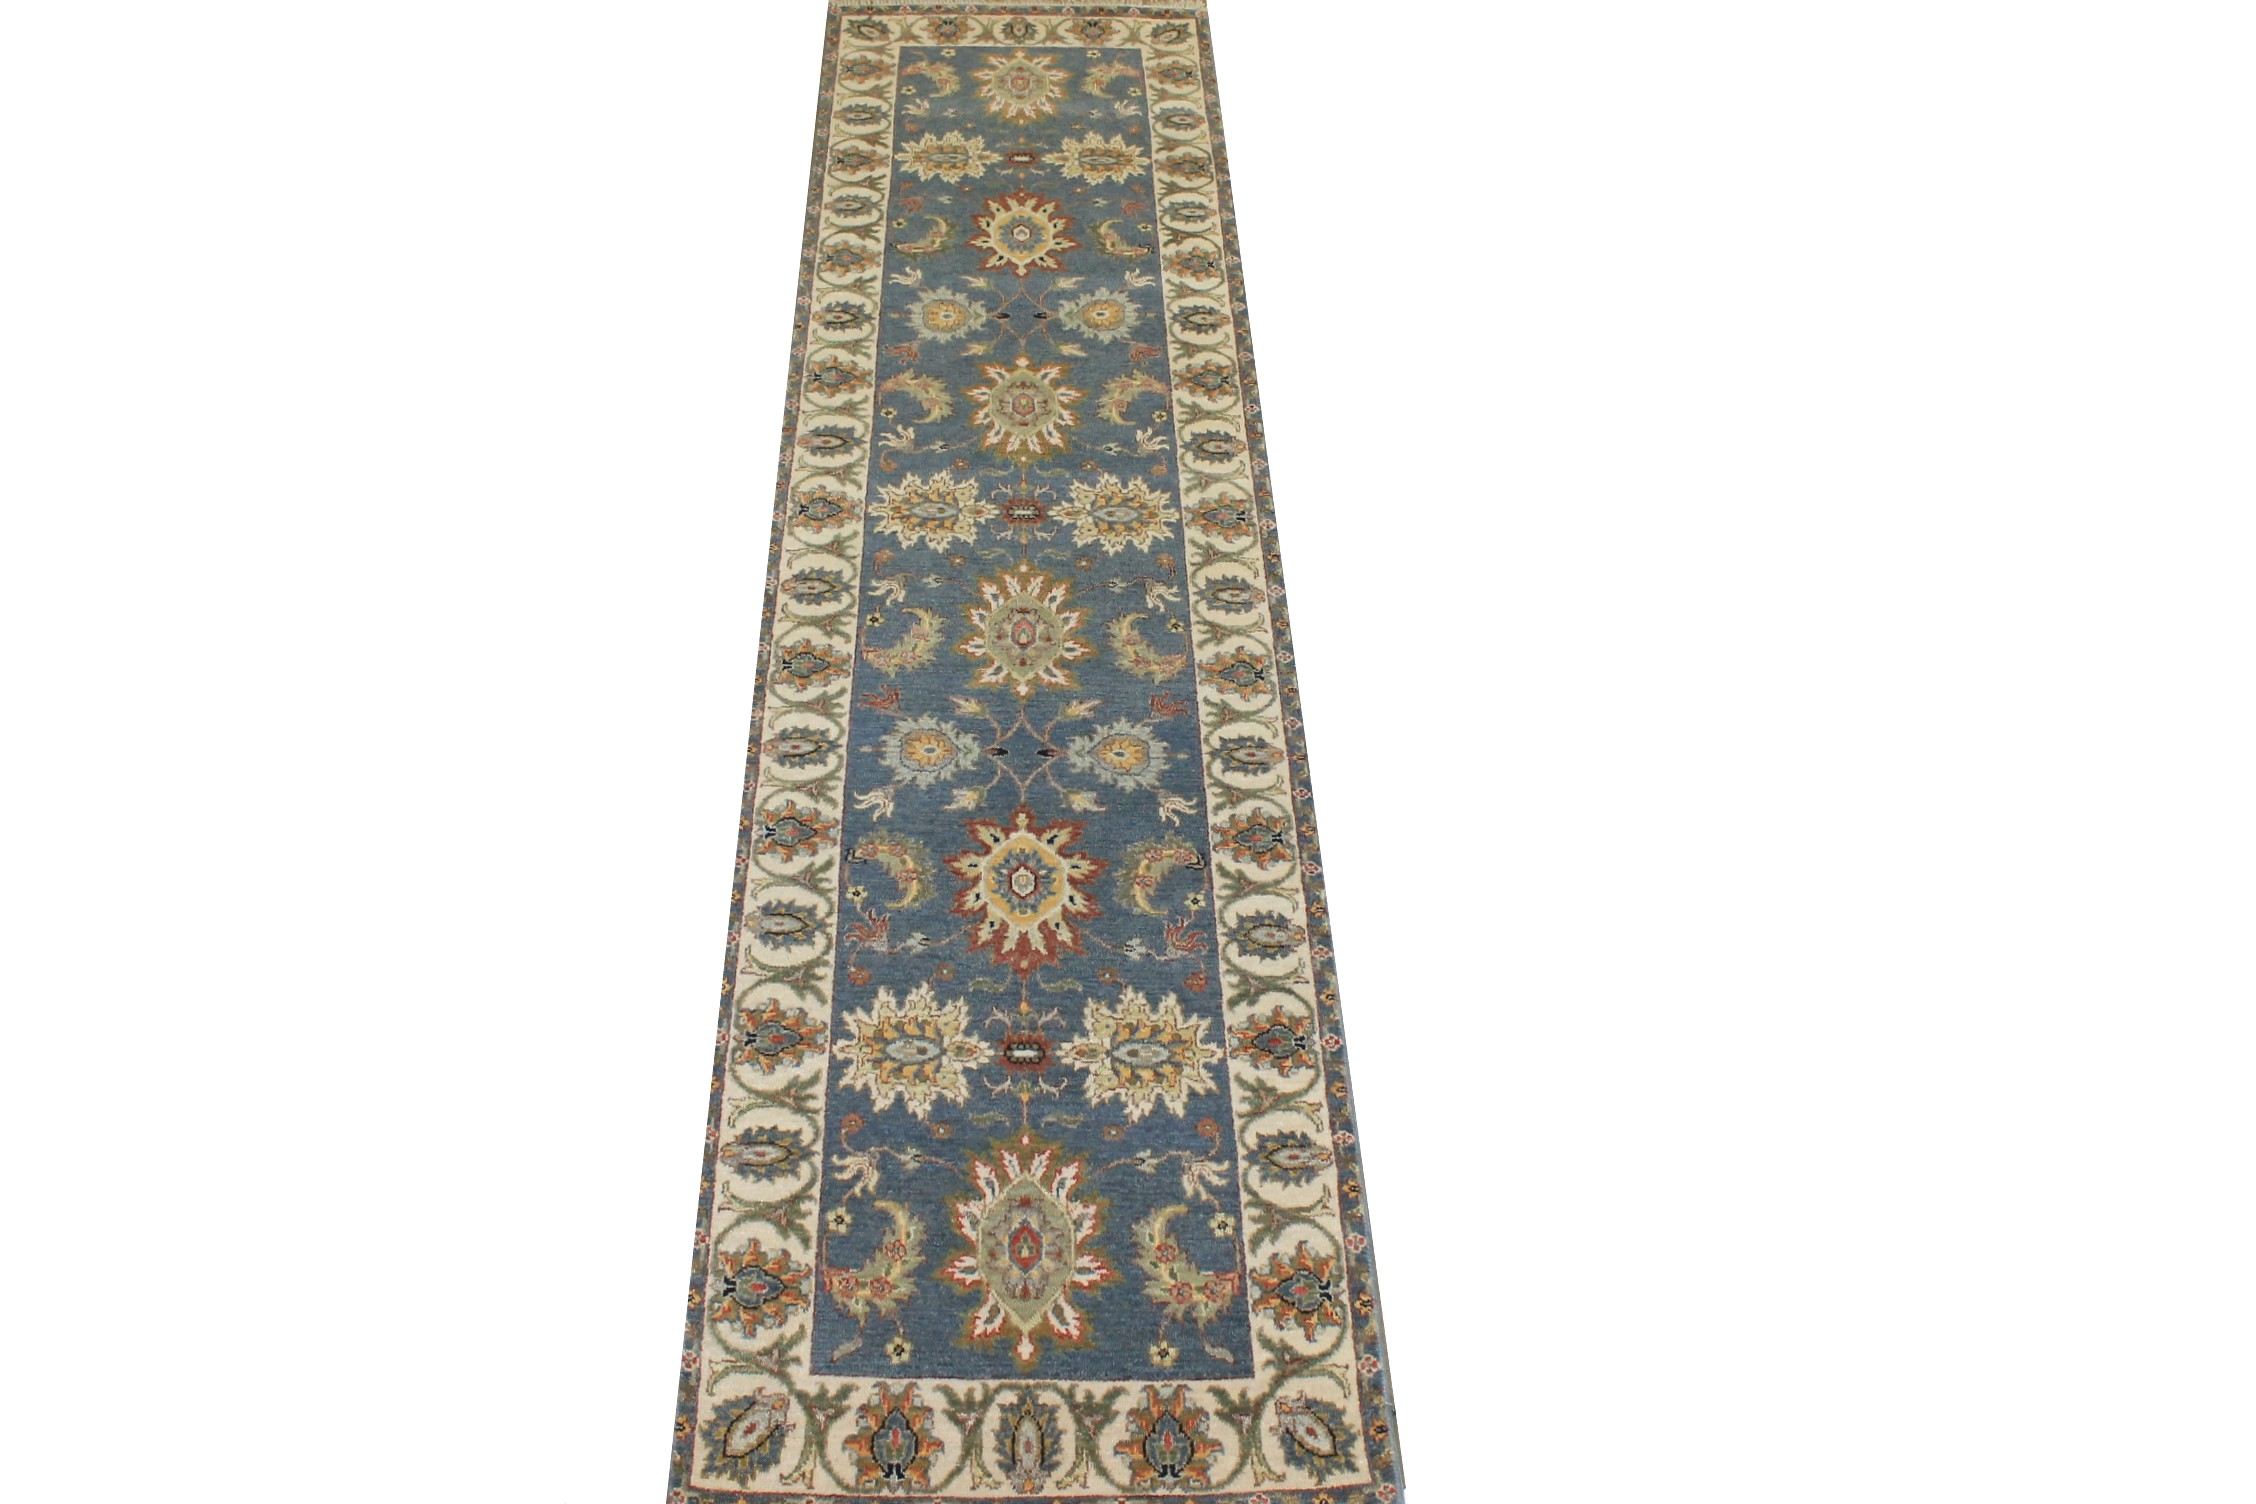 10 ft. Runner Traditional Hand Knotted Wool Area Rug - MR025221